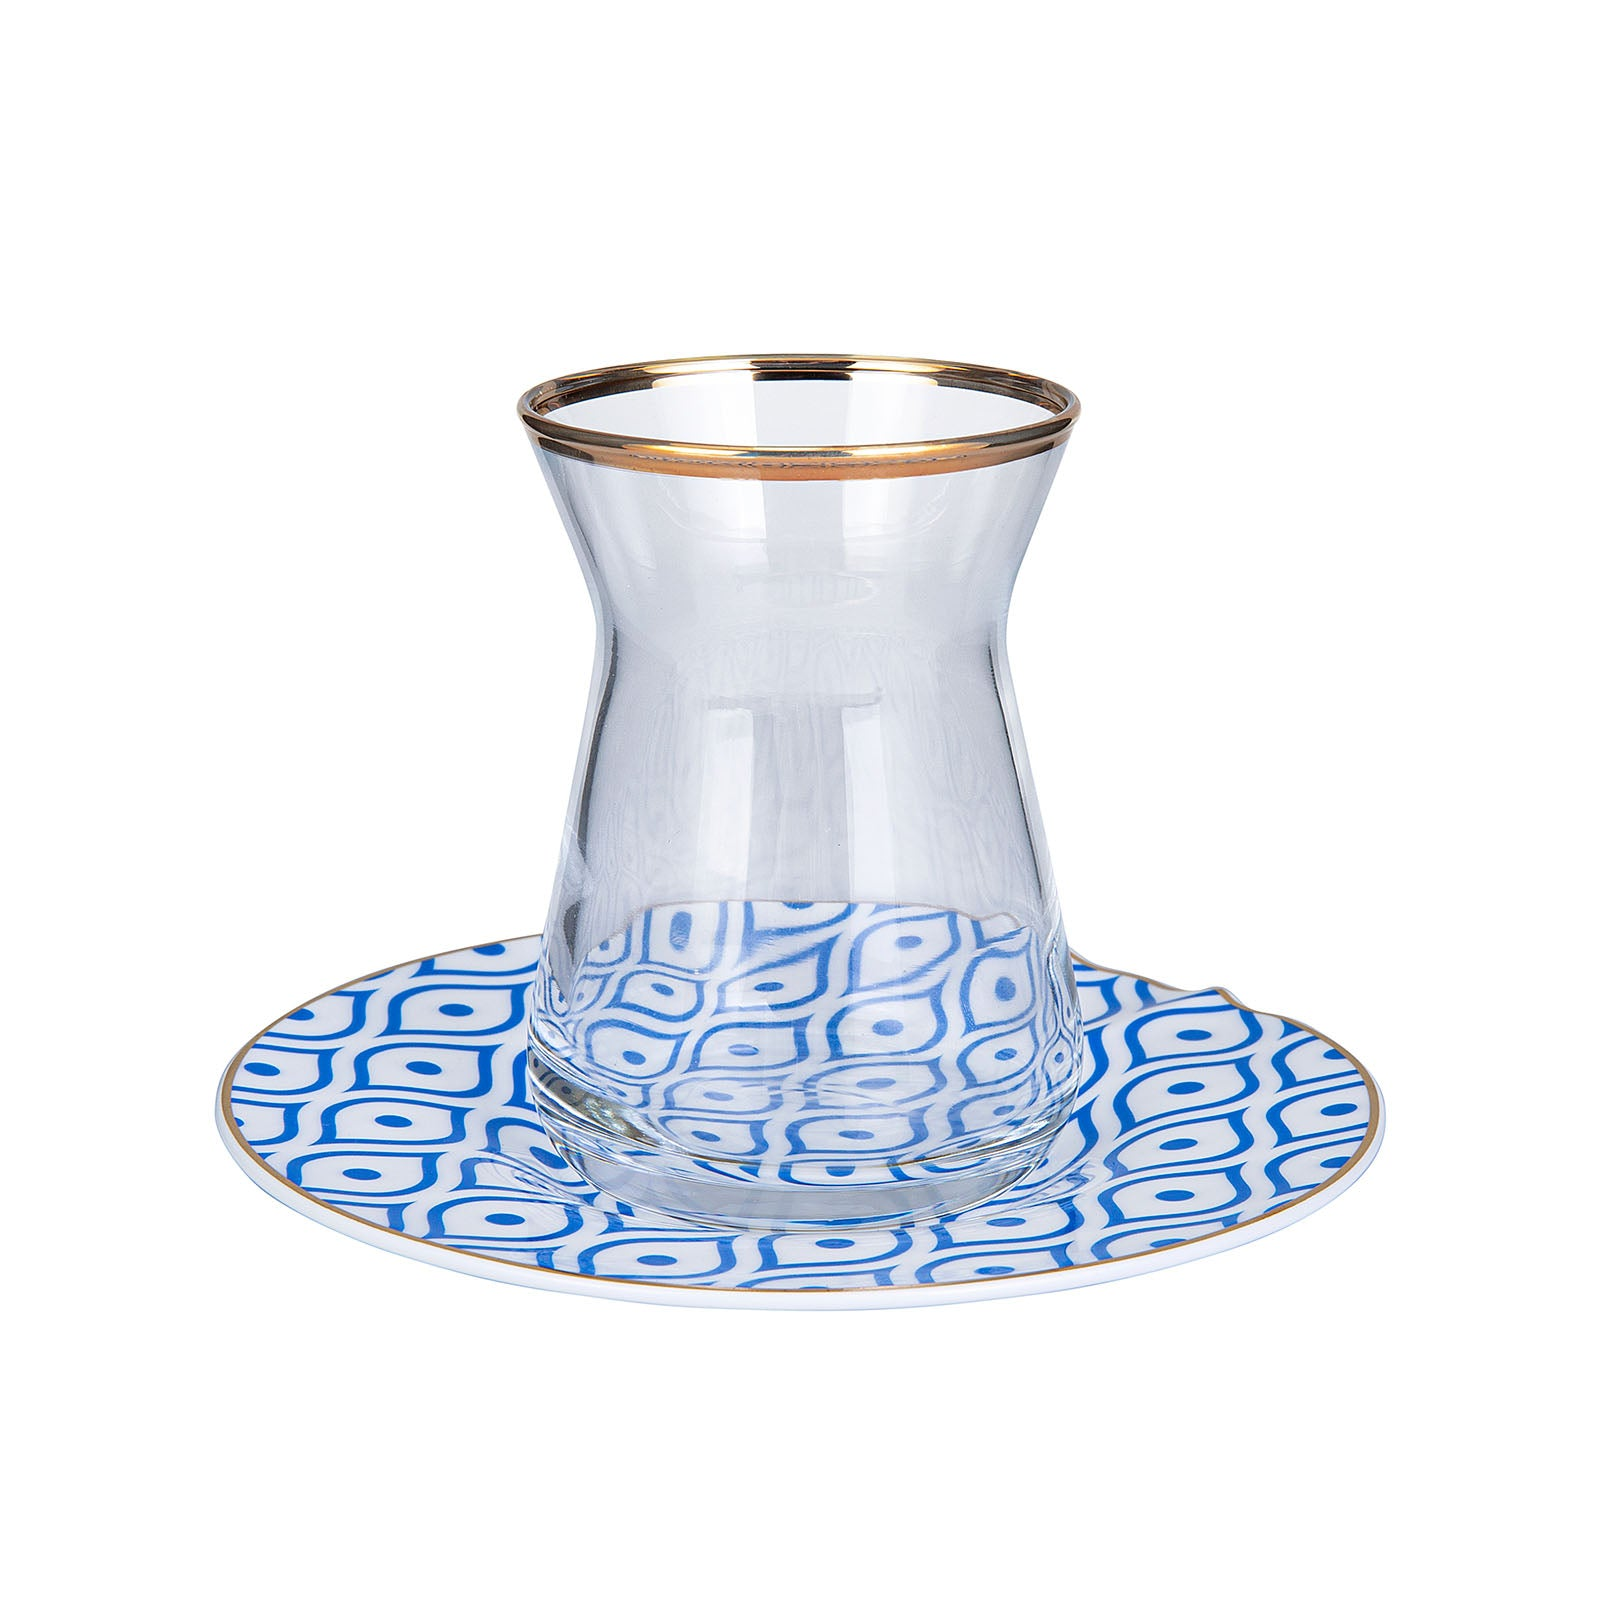 Fine Pearl Eye Blue 12 Piece Pearl Tea Set 153.03.07.7694 - ebarza